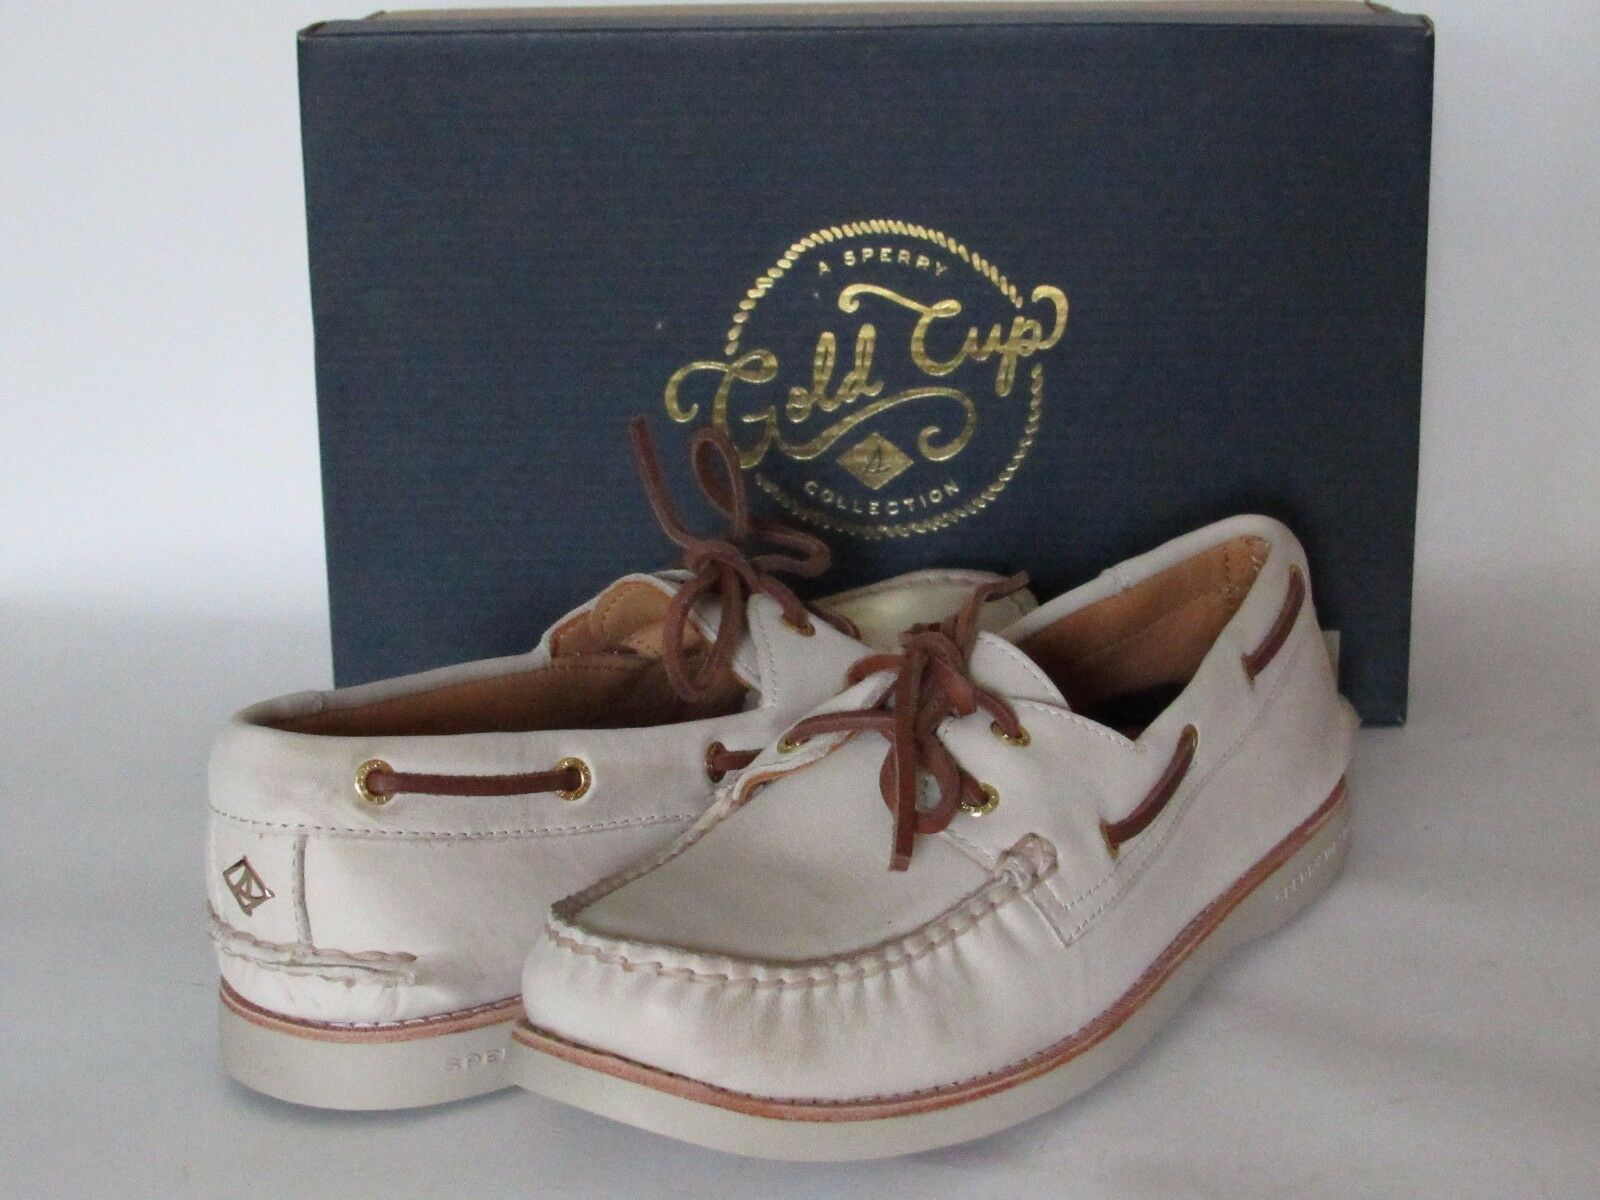 SPERRY Top-Sider gold CUP Women's Leather Loafers A O Boat shoes sz 10